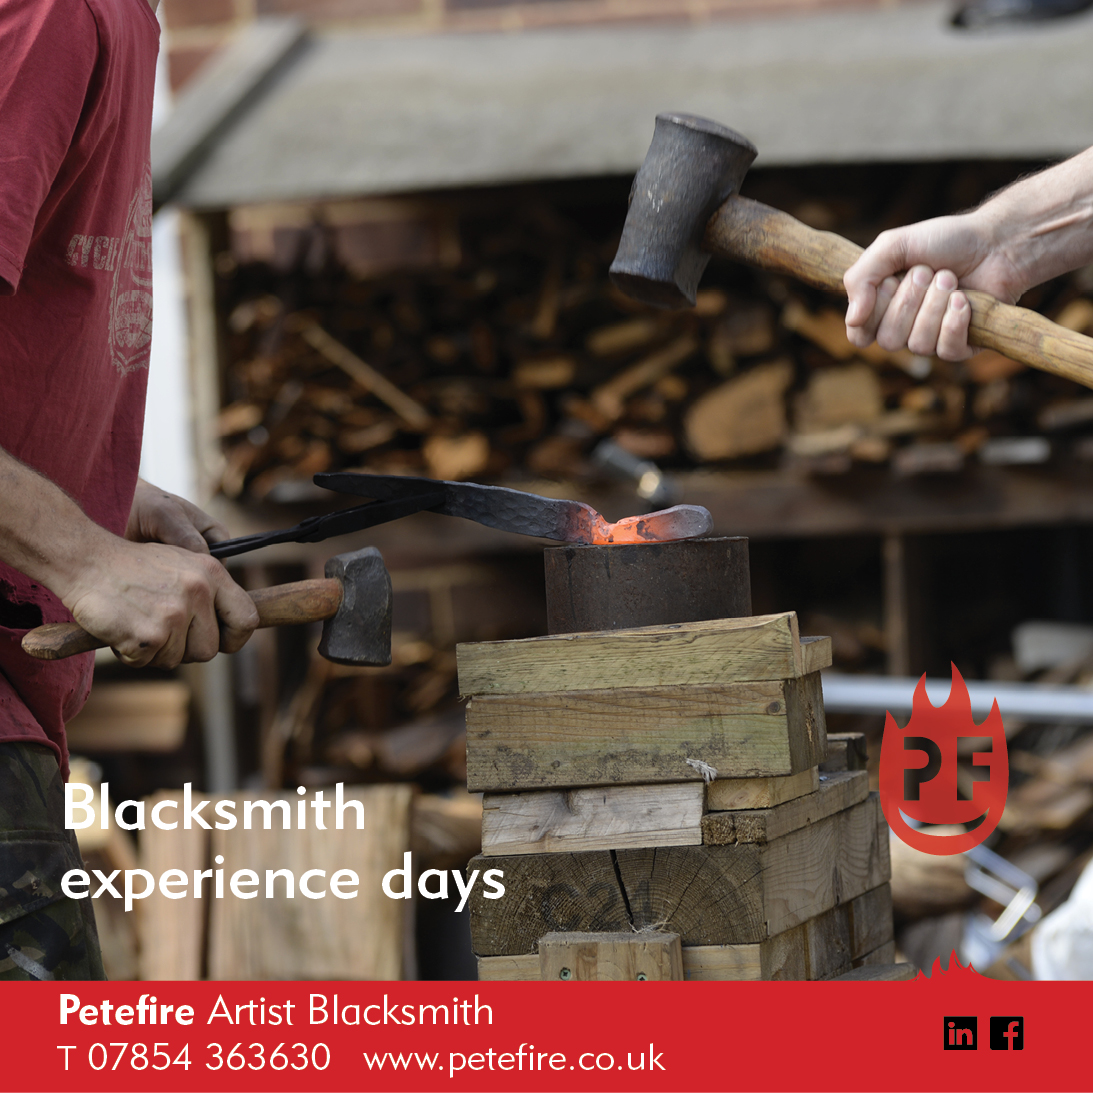 Petefire Artist Blacksmith, forging experience days